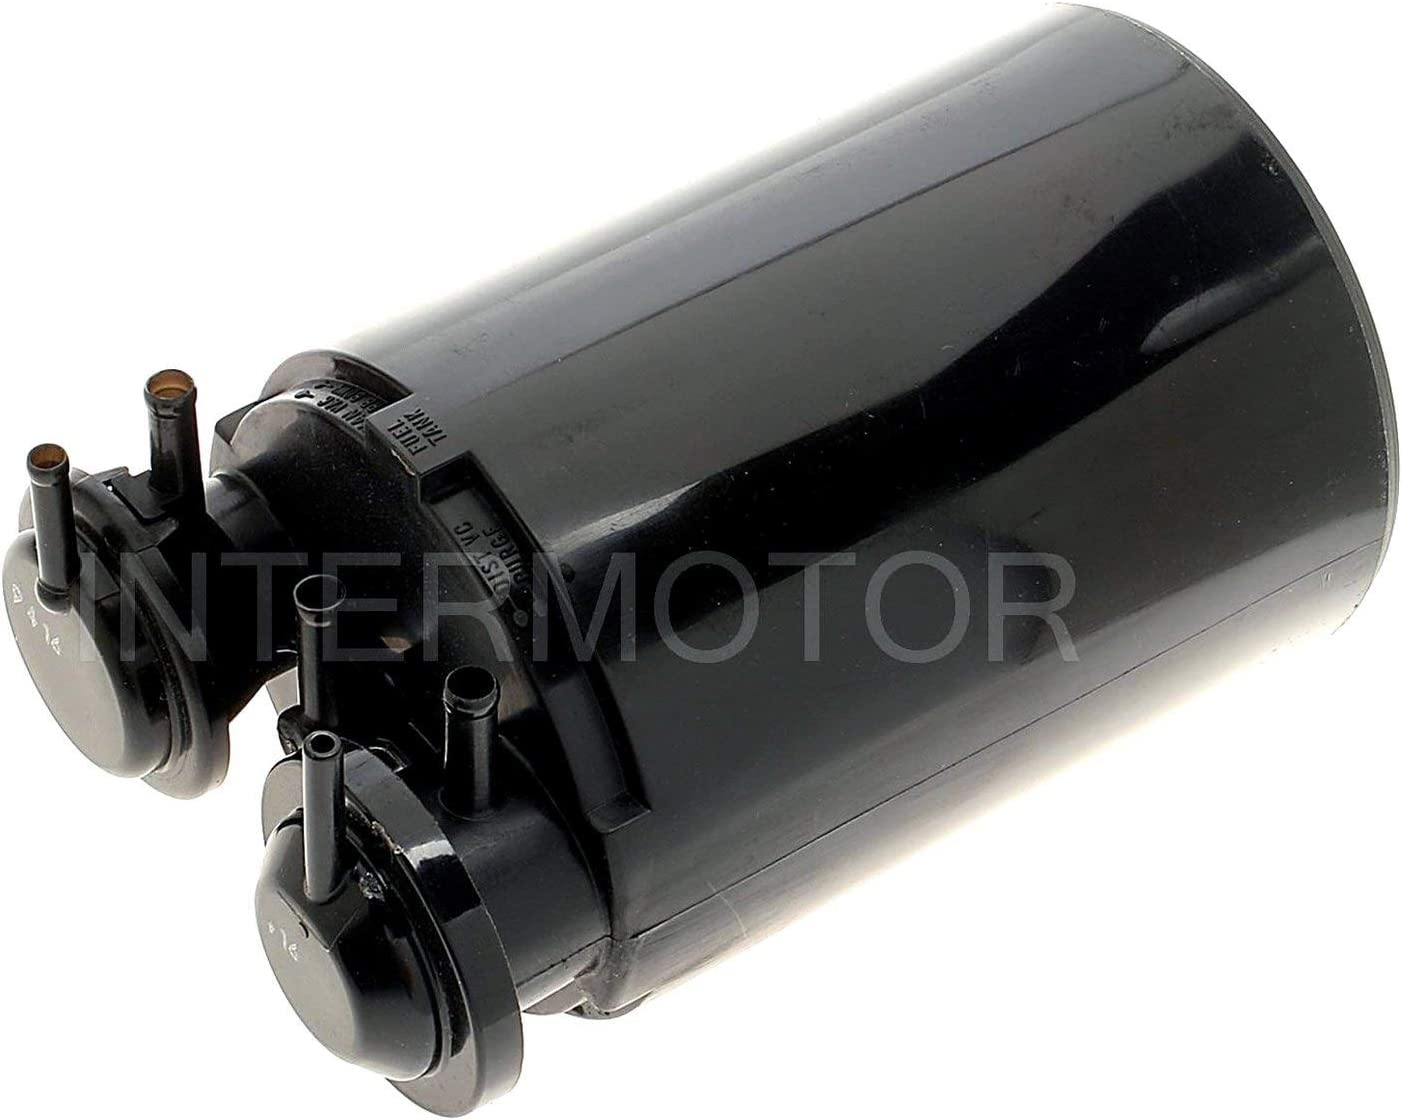 Latest item Standard Motor Products CP3113 Canister Max 51% OFF Valve Purge